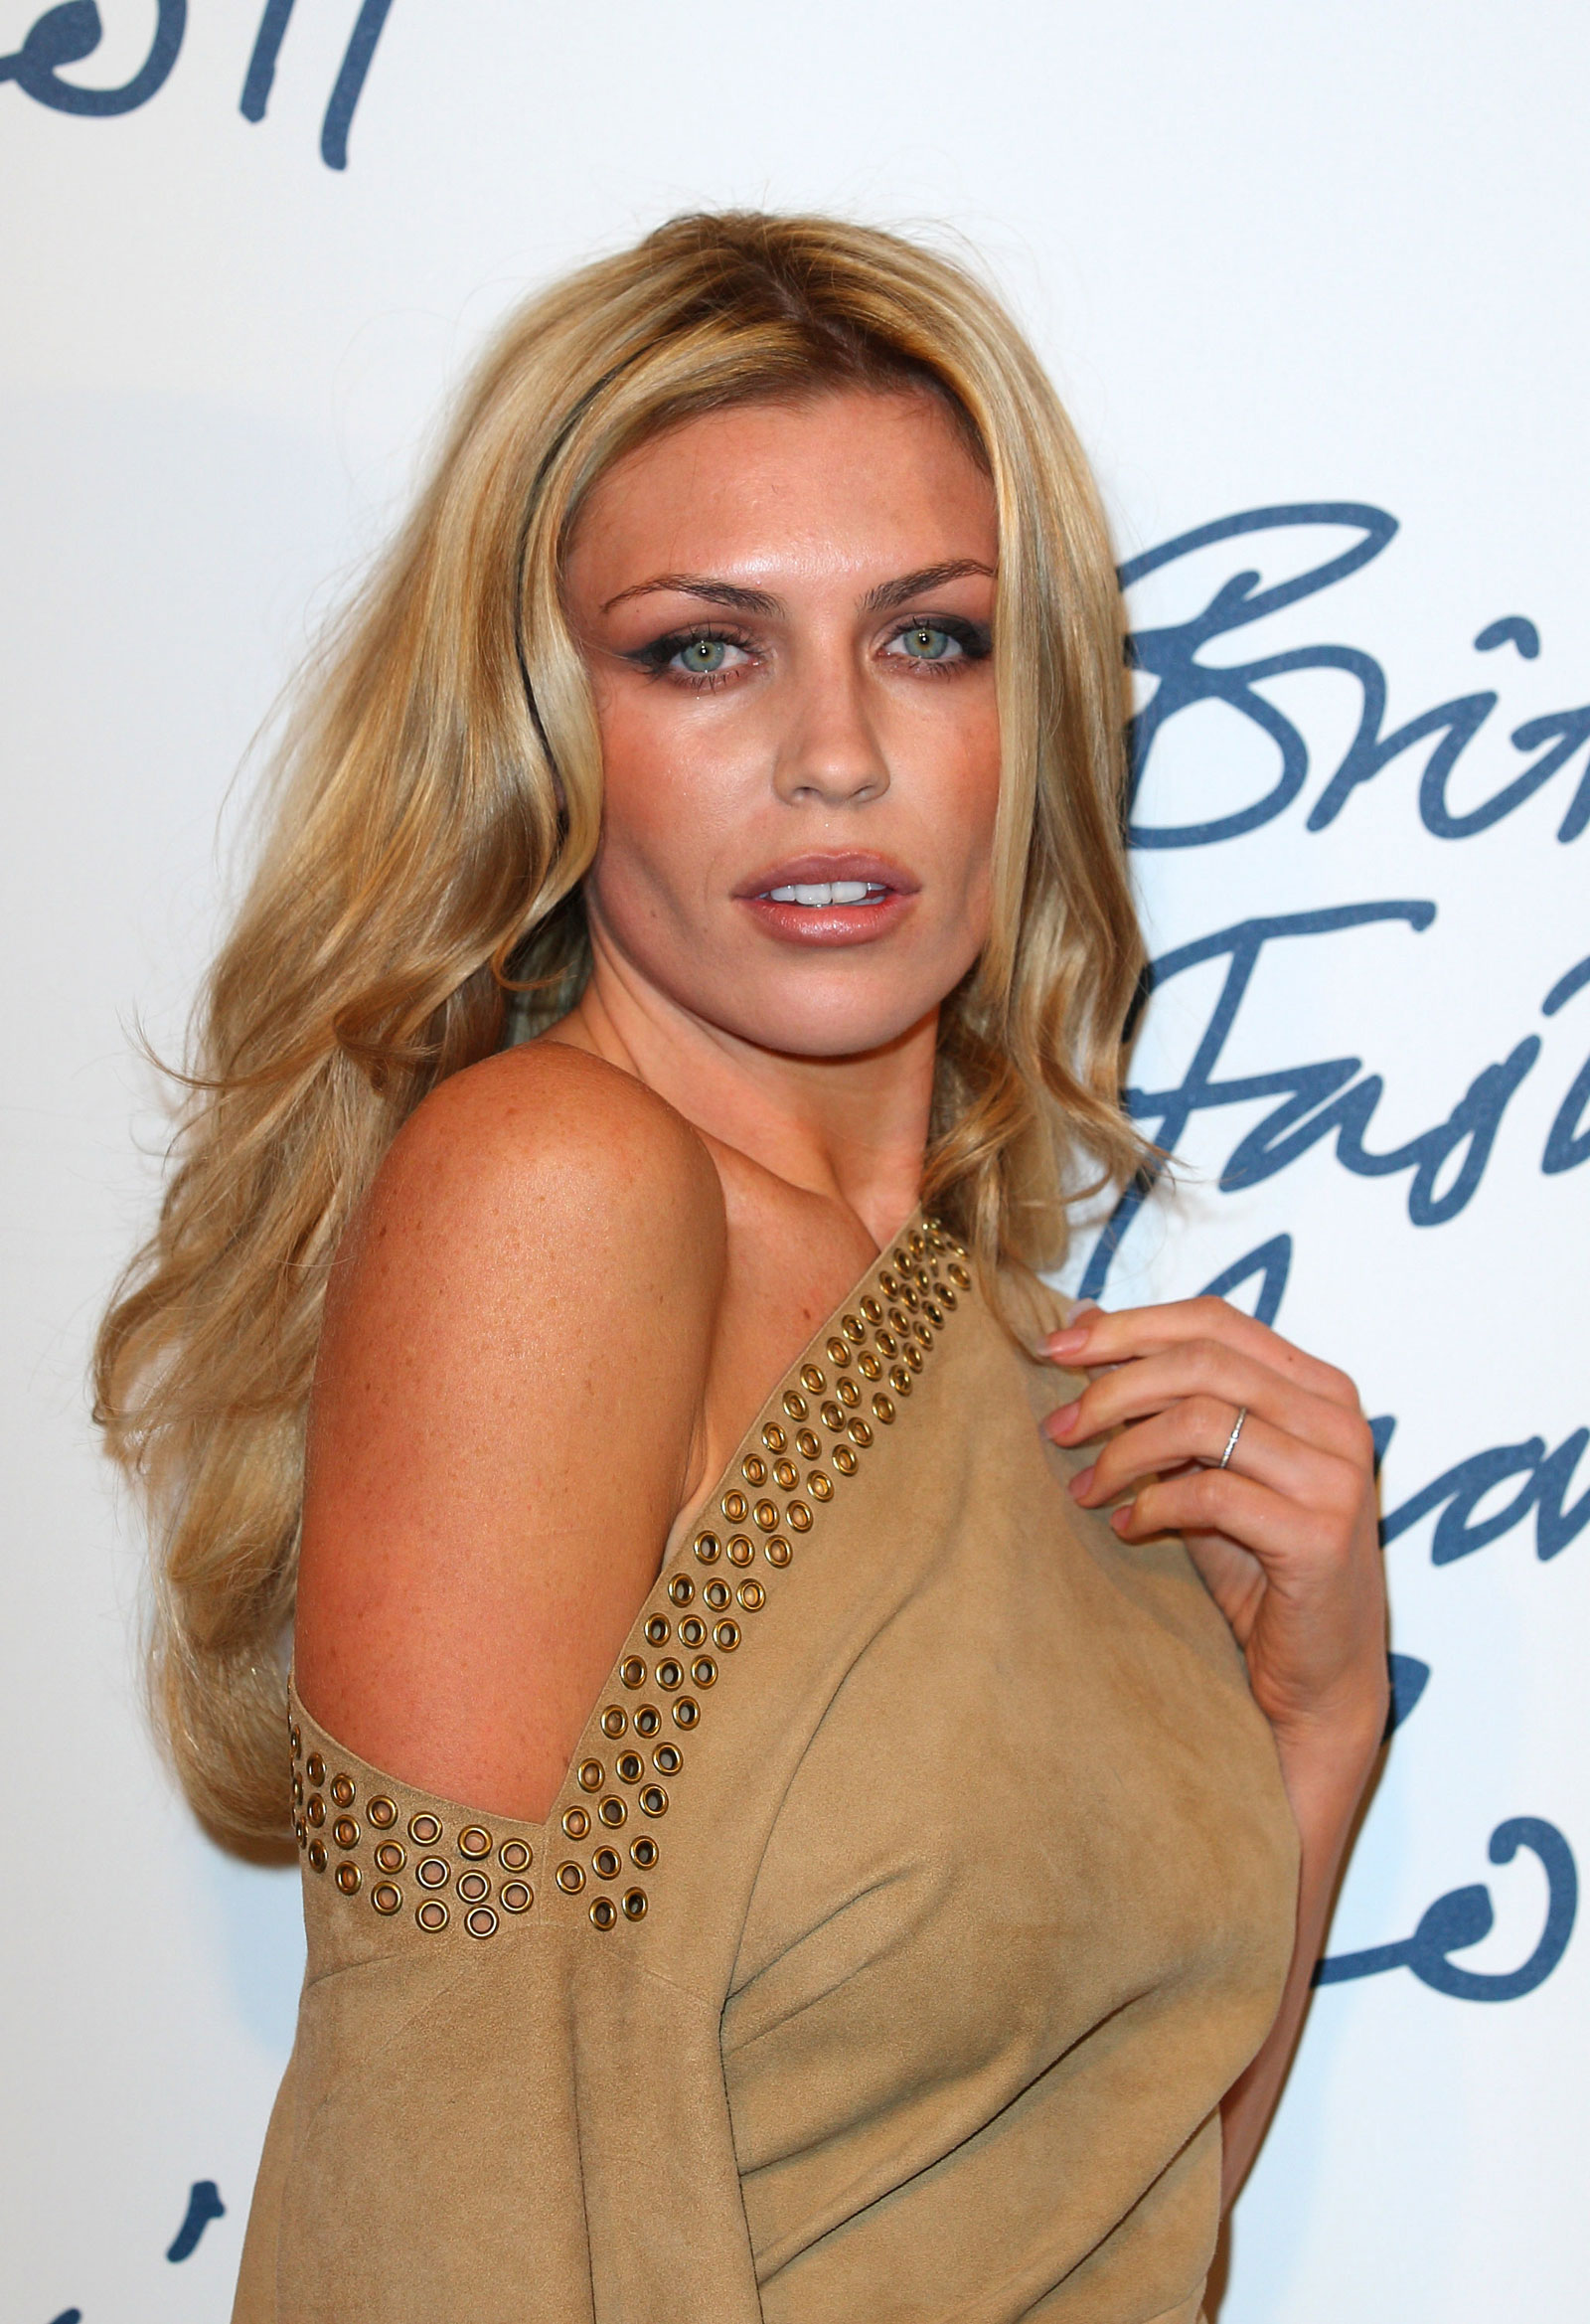 Abigail Abbey Clancy at British Fashion Awards in London